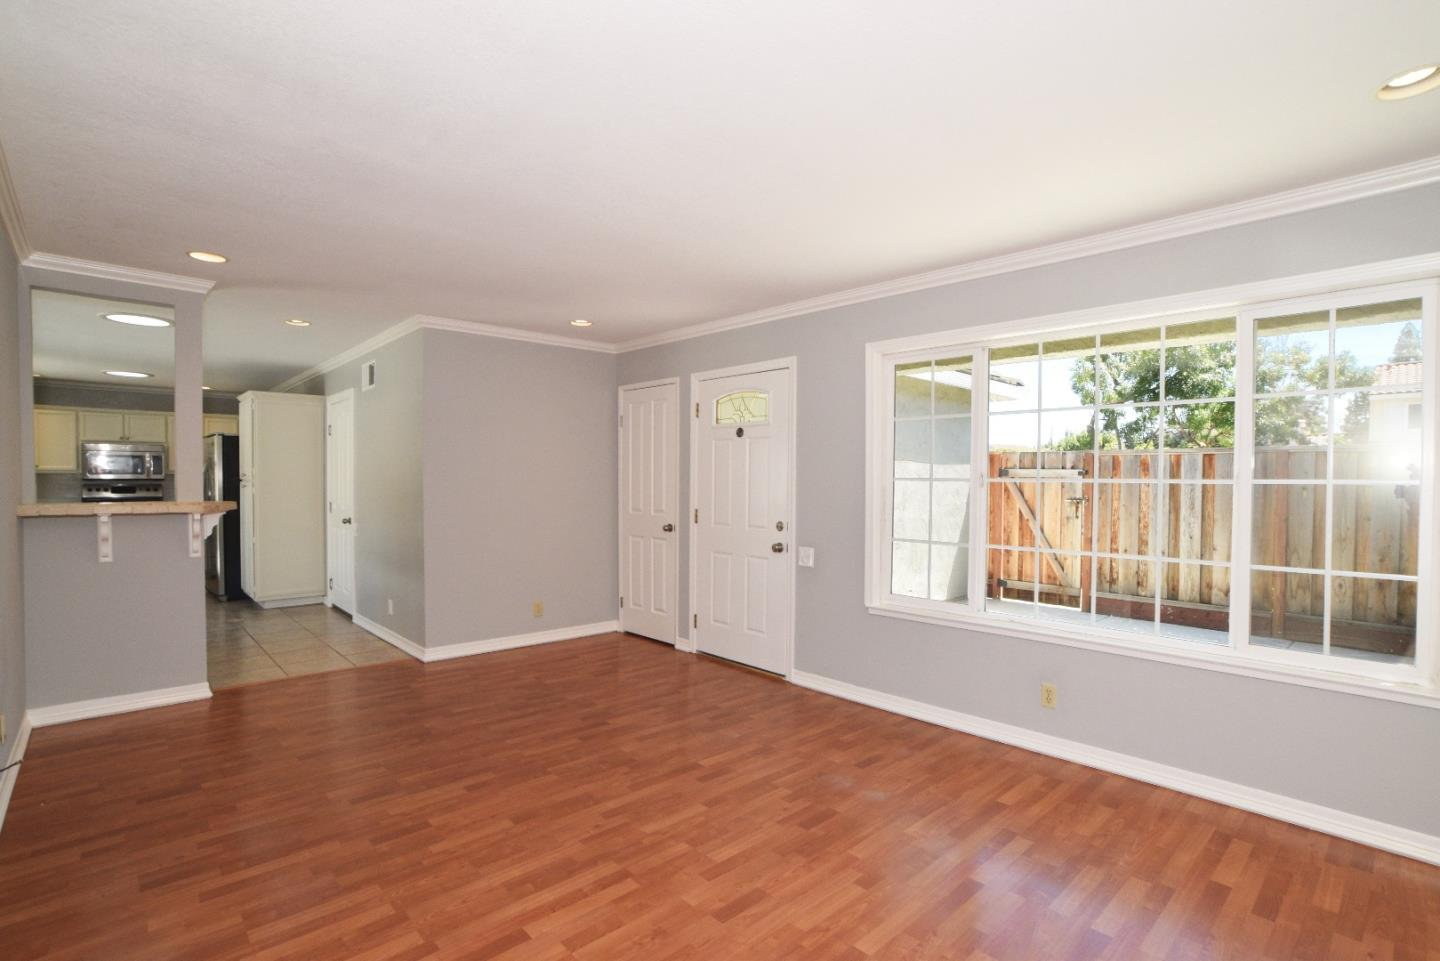 Additional photo for property listing at 5432 Demerest Lane  San Jose, カリフォルニア 95138 アメリカ合衆国